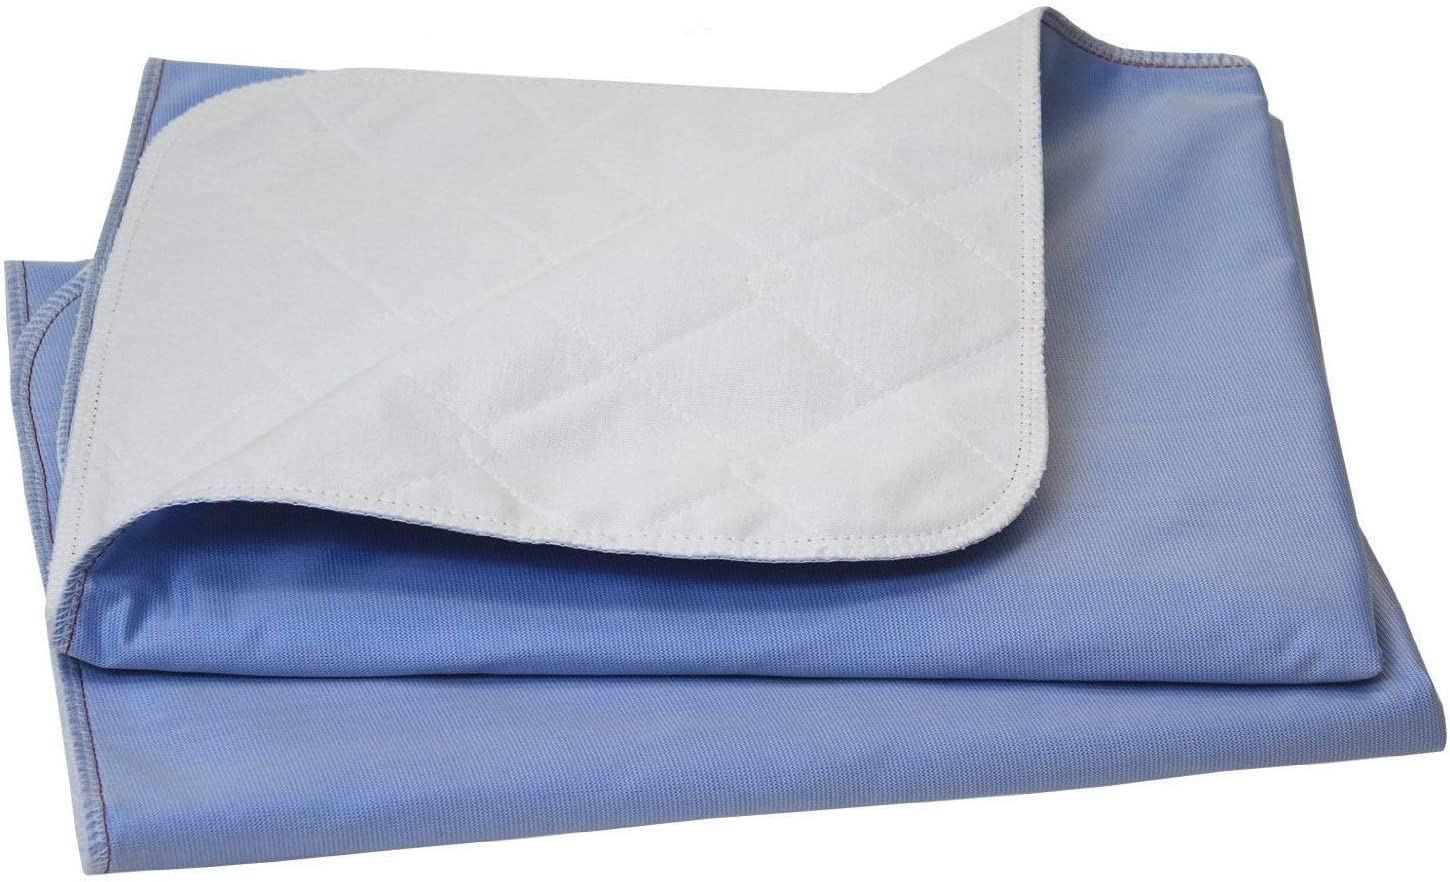 HEAD2TOE- Incontinence Bed Pad   Big Size Washable Waterproof Mattress Protector   Premium Highly Absorbent Large Reusable Washable Underpad 34x52 - Ideal for Adults, Kids, and Pets: Health & Personal Care